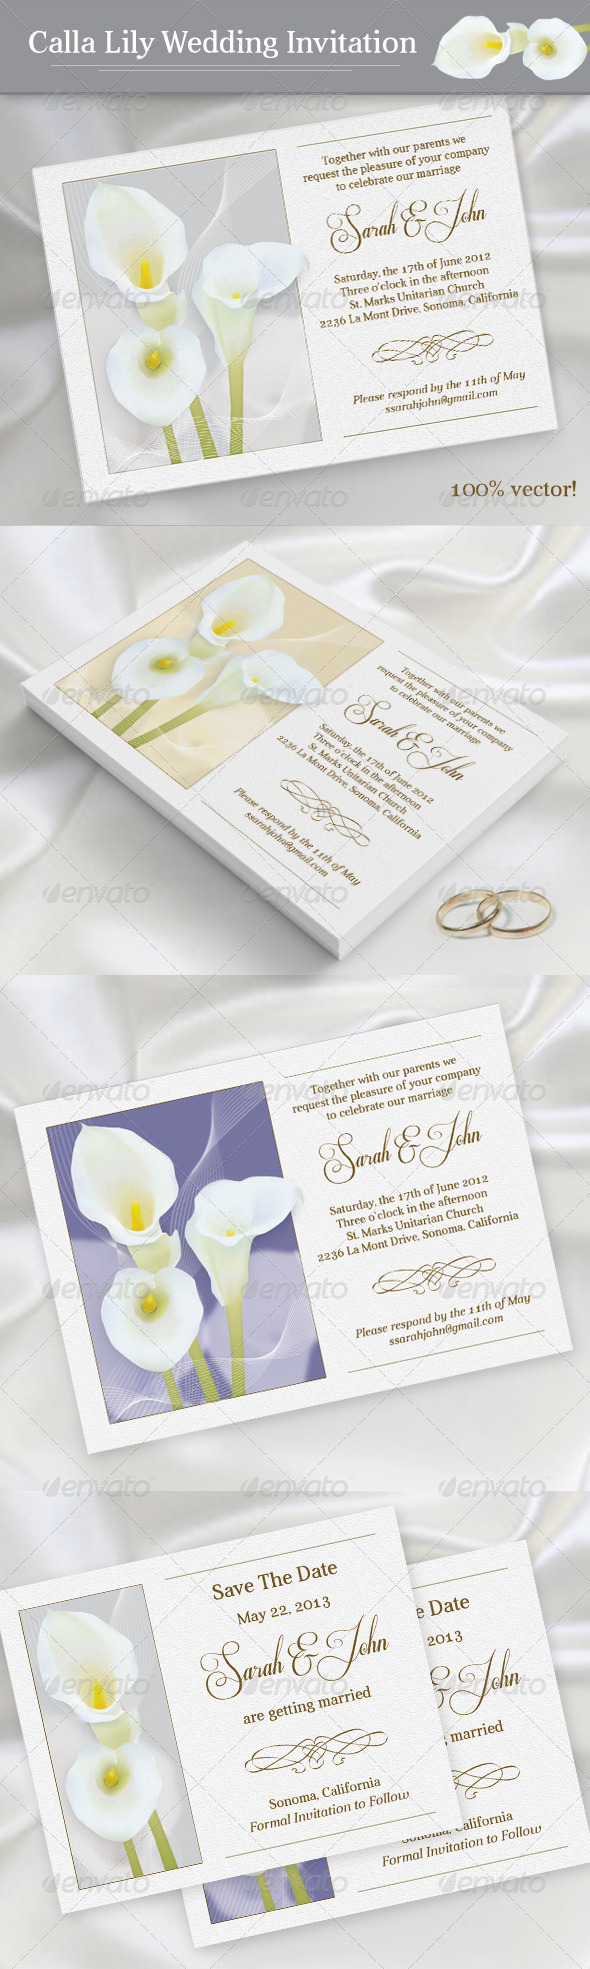 Calla Lily Wedding Invitation - Weddings Cards & Invites